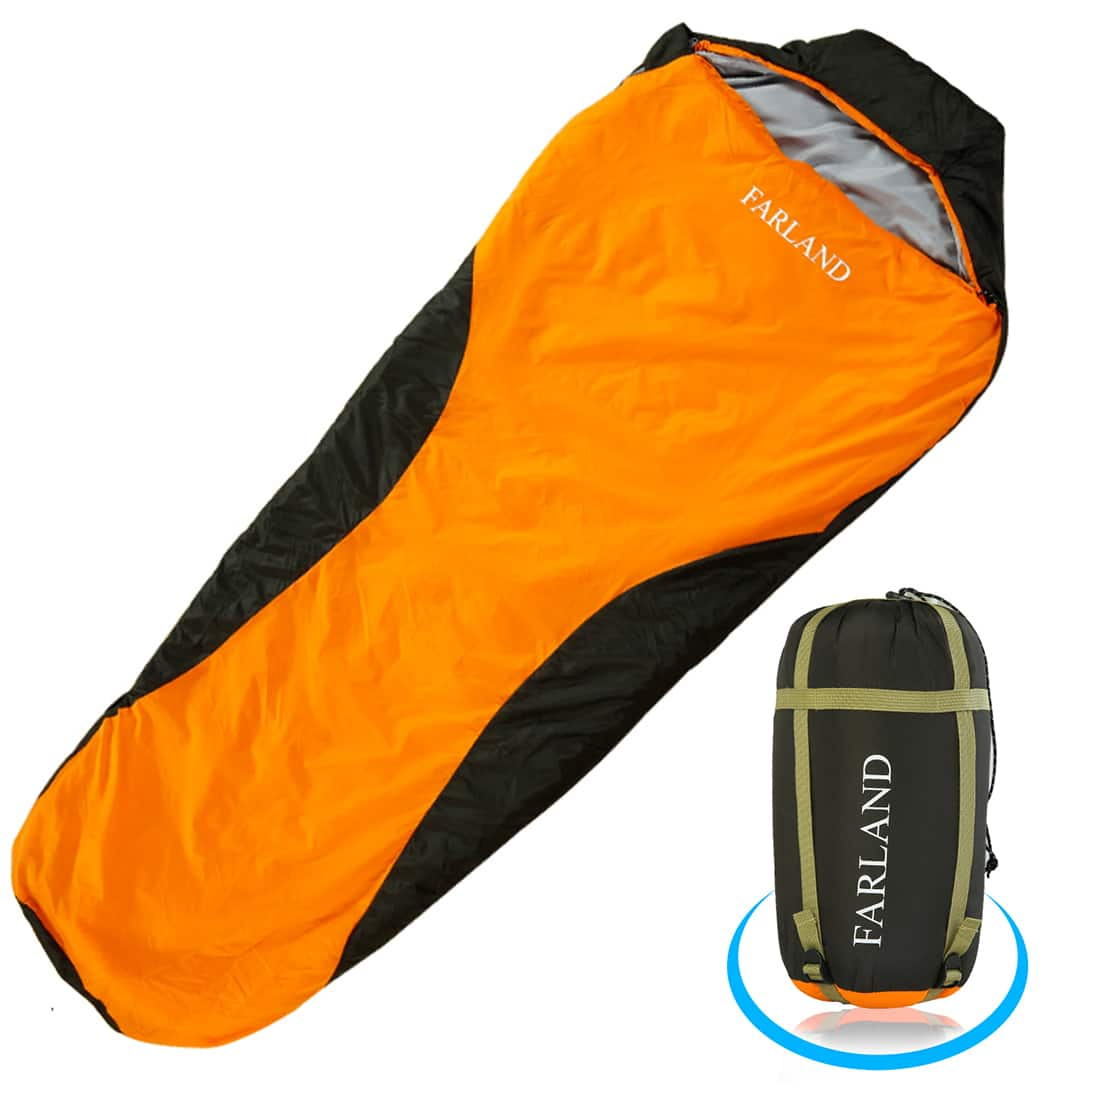 FARLAND Lightweight Sleeping Bag & Portable Waterproof Mummy Bag With Compression Sack @ Amazon $19.80